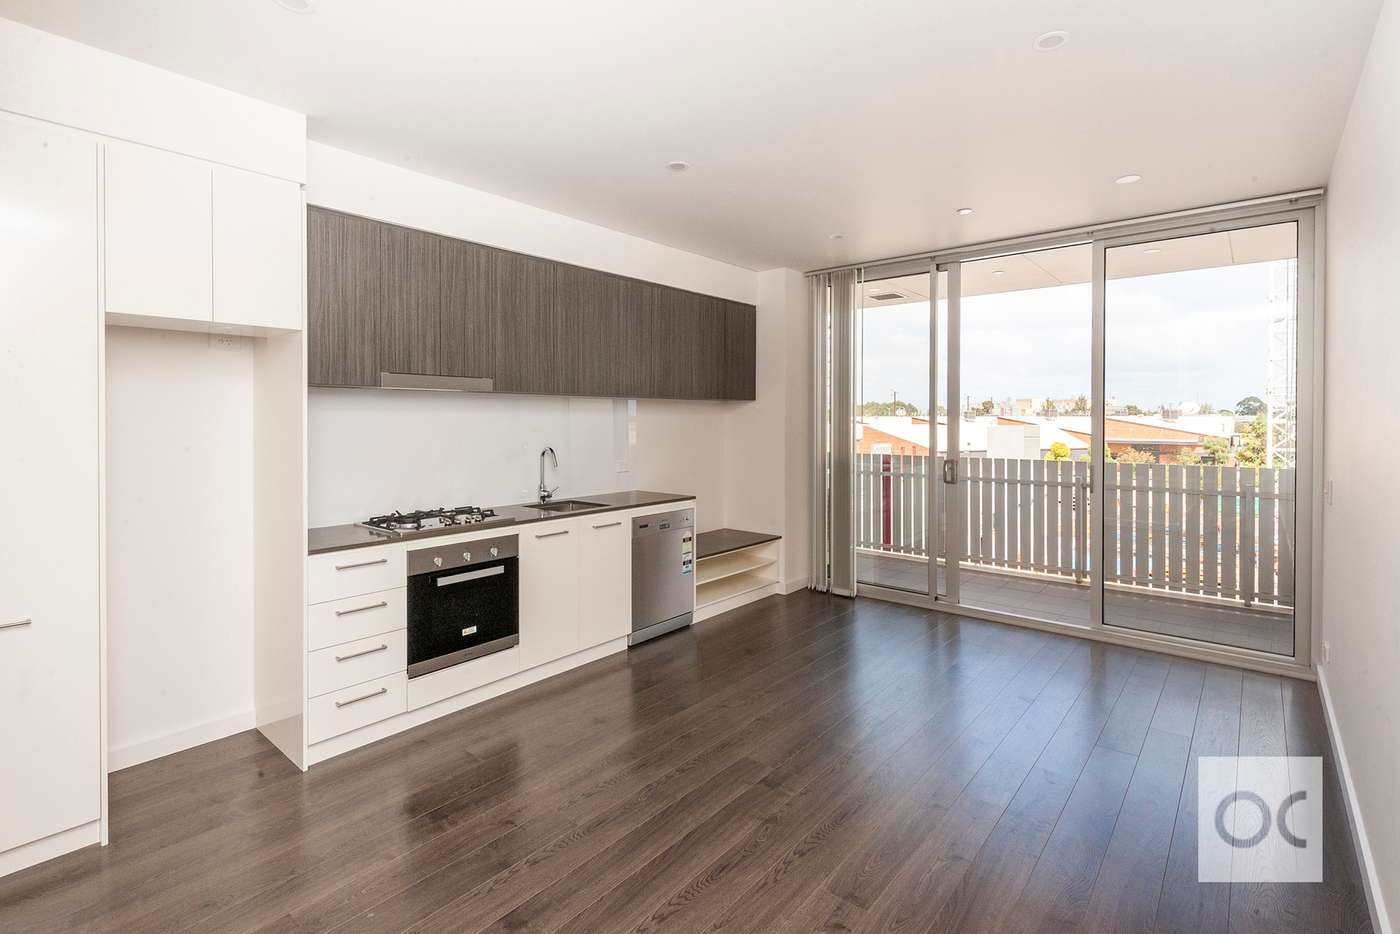 Main view of Homely apartment listing, 201/47 Fifth Street, Bowden SA 5007